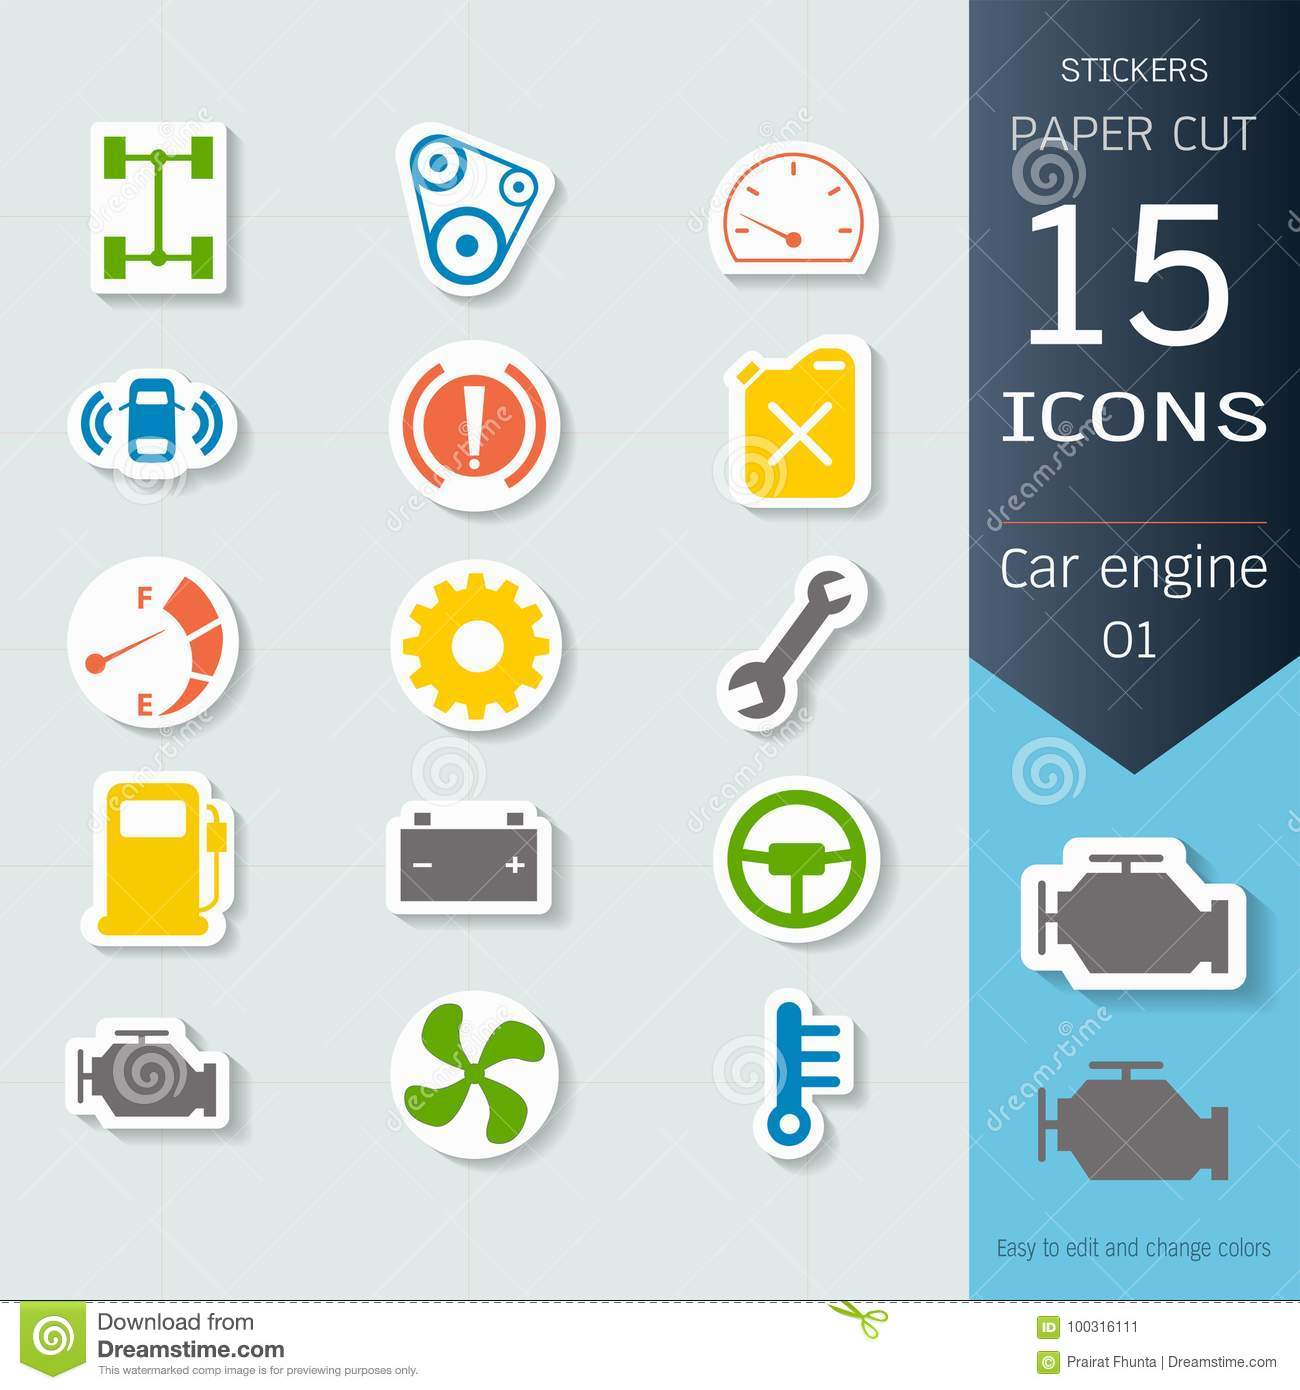 Car engine infographic icons set, Vector Illustrations stickers and paper cut style, Easy to editable and change